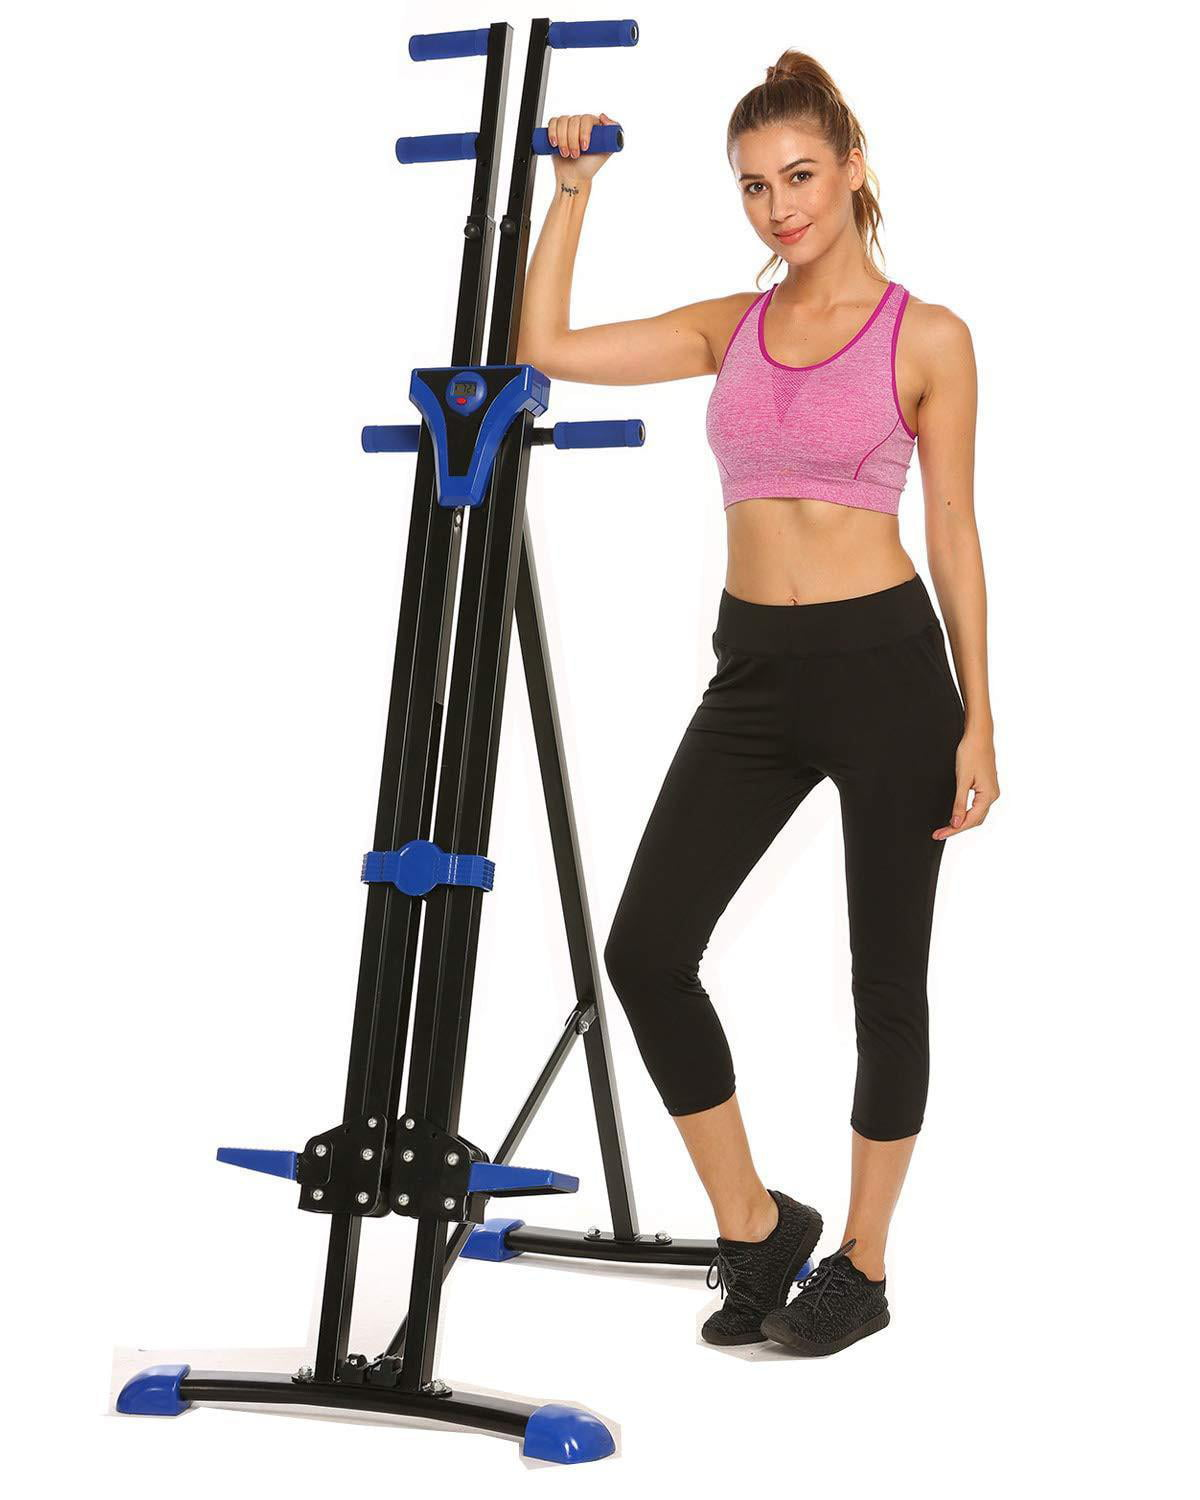 Vertical Climber Folding Stepper Adjustable Height with LED Display Climbing Fit